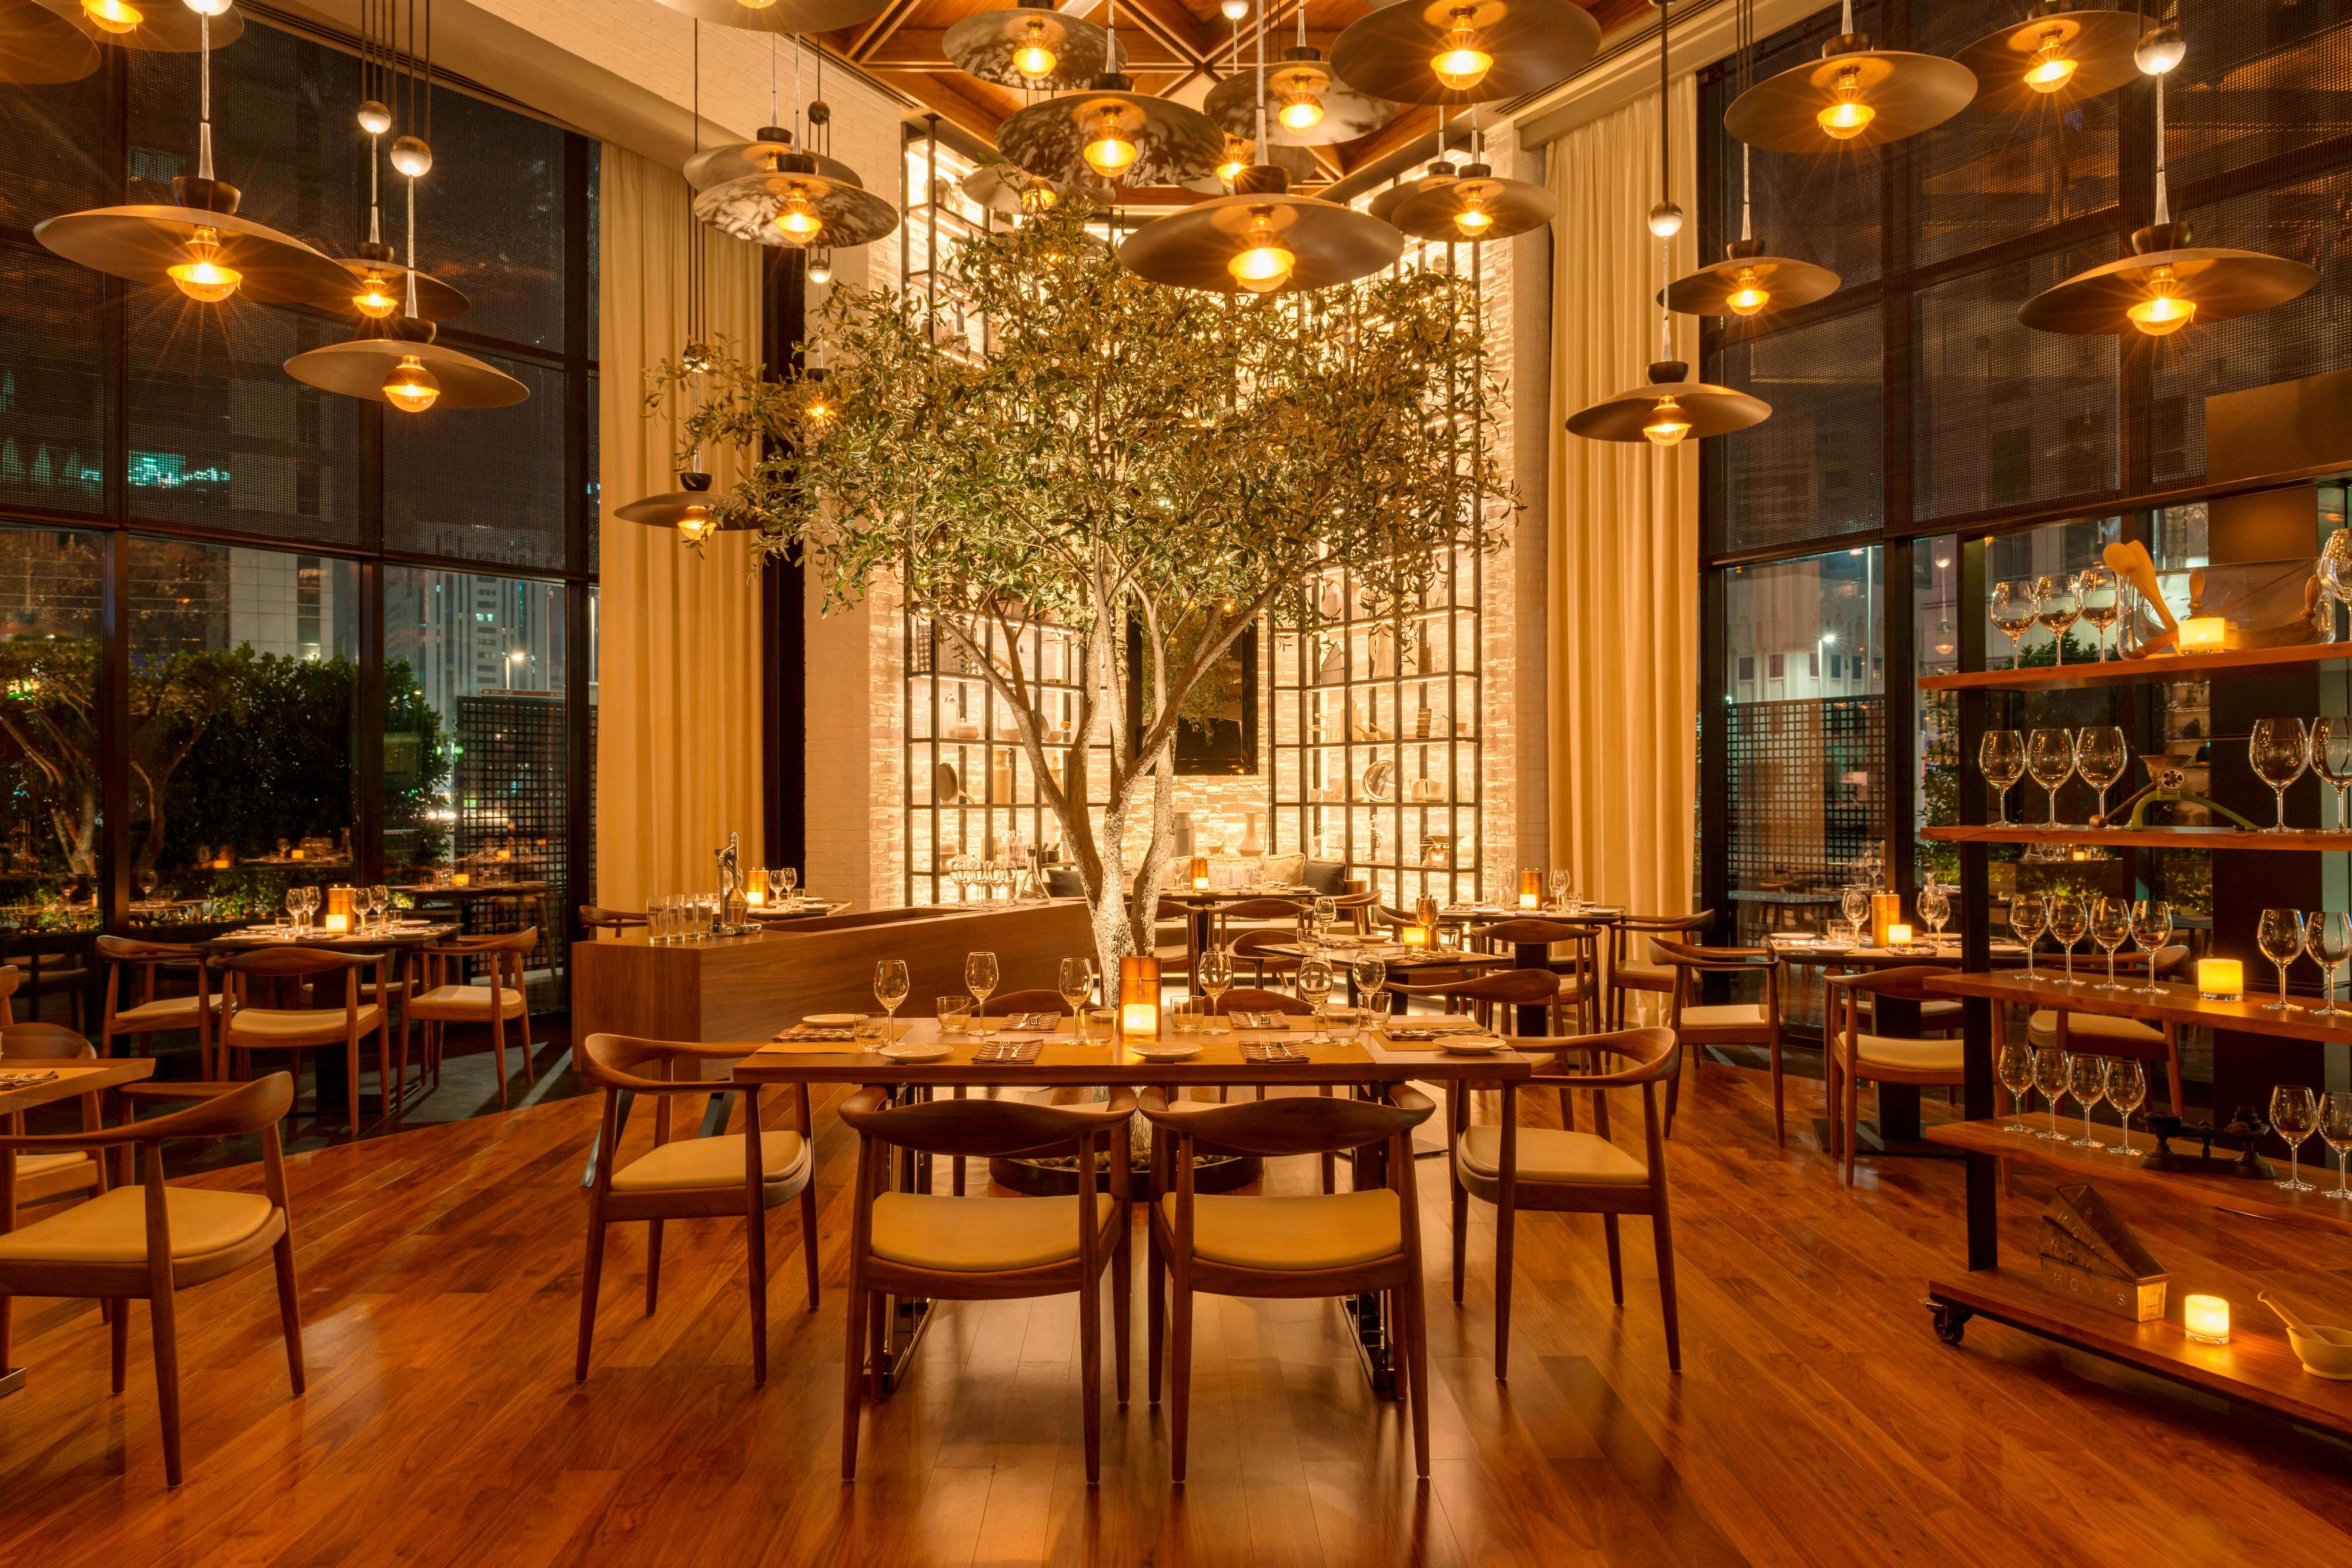 Modern American Cuisine with Local Influence